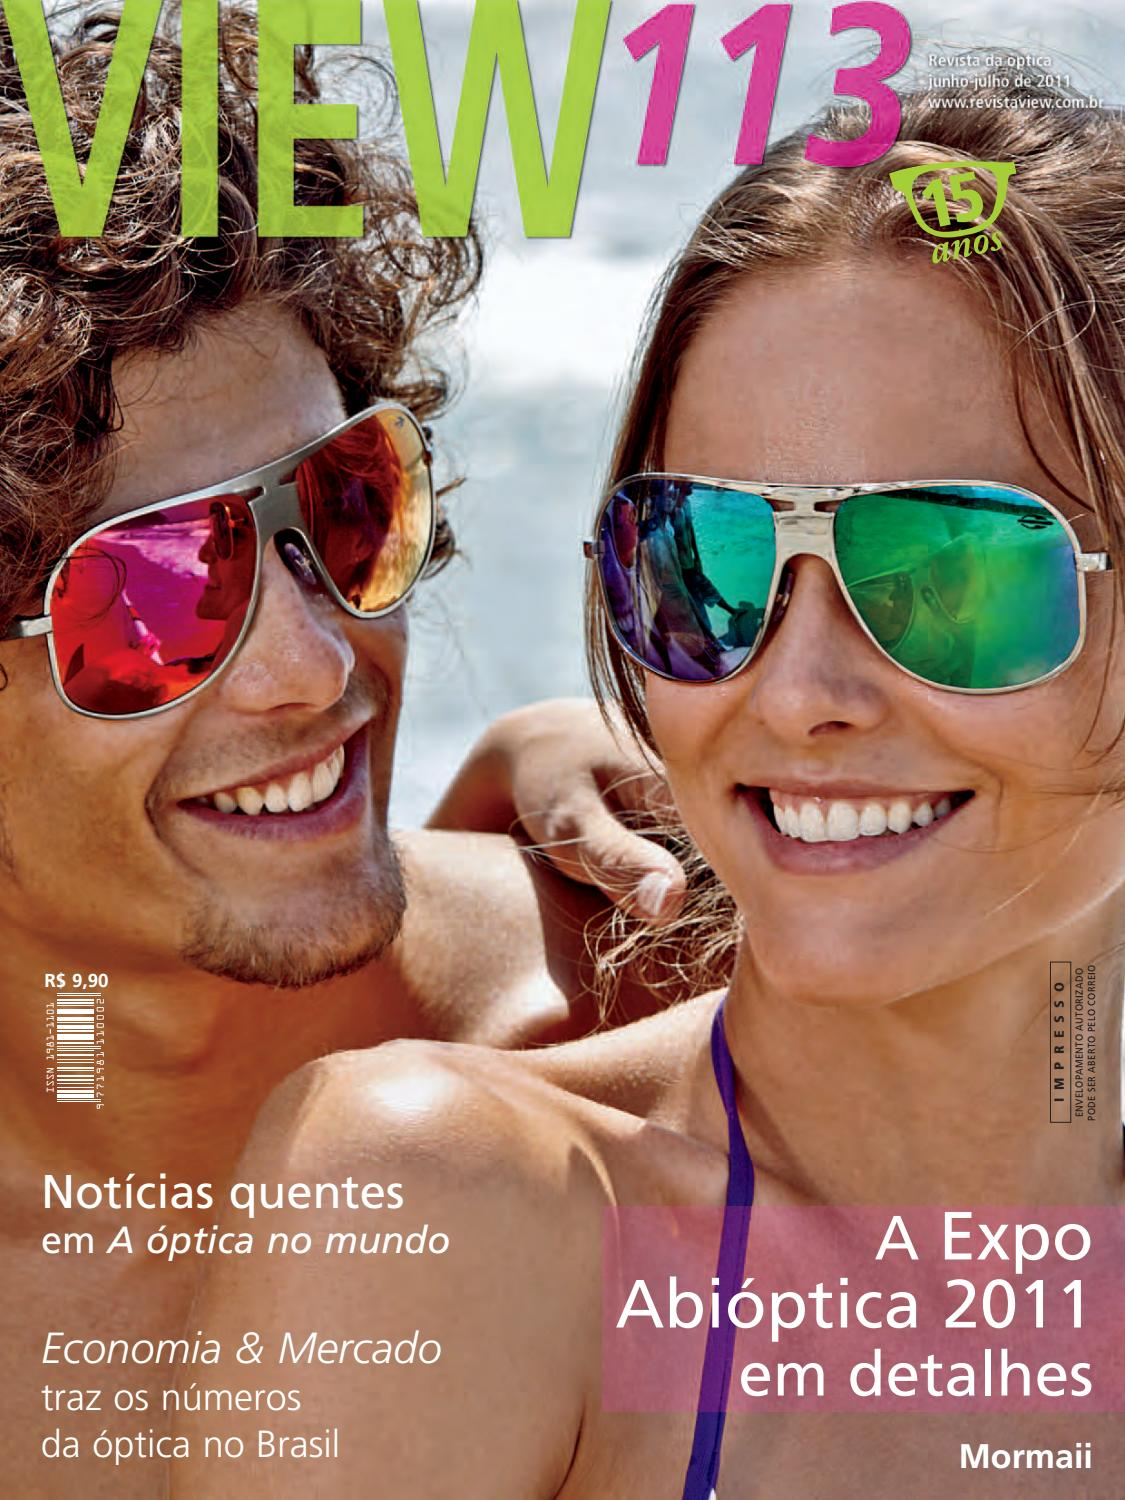 874ea0a7540c5 VIEW 113 by Revista VIEW - issuu